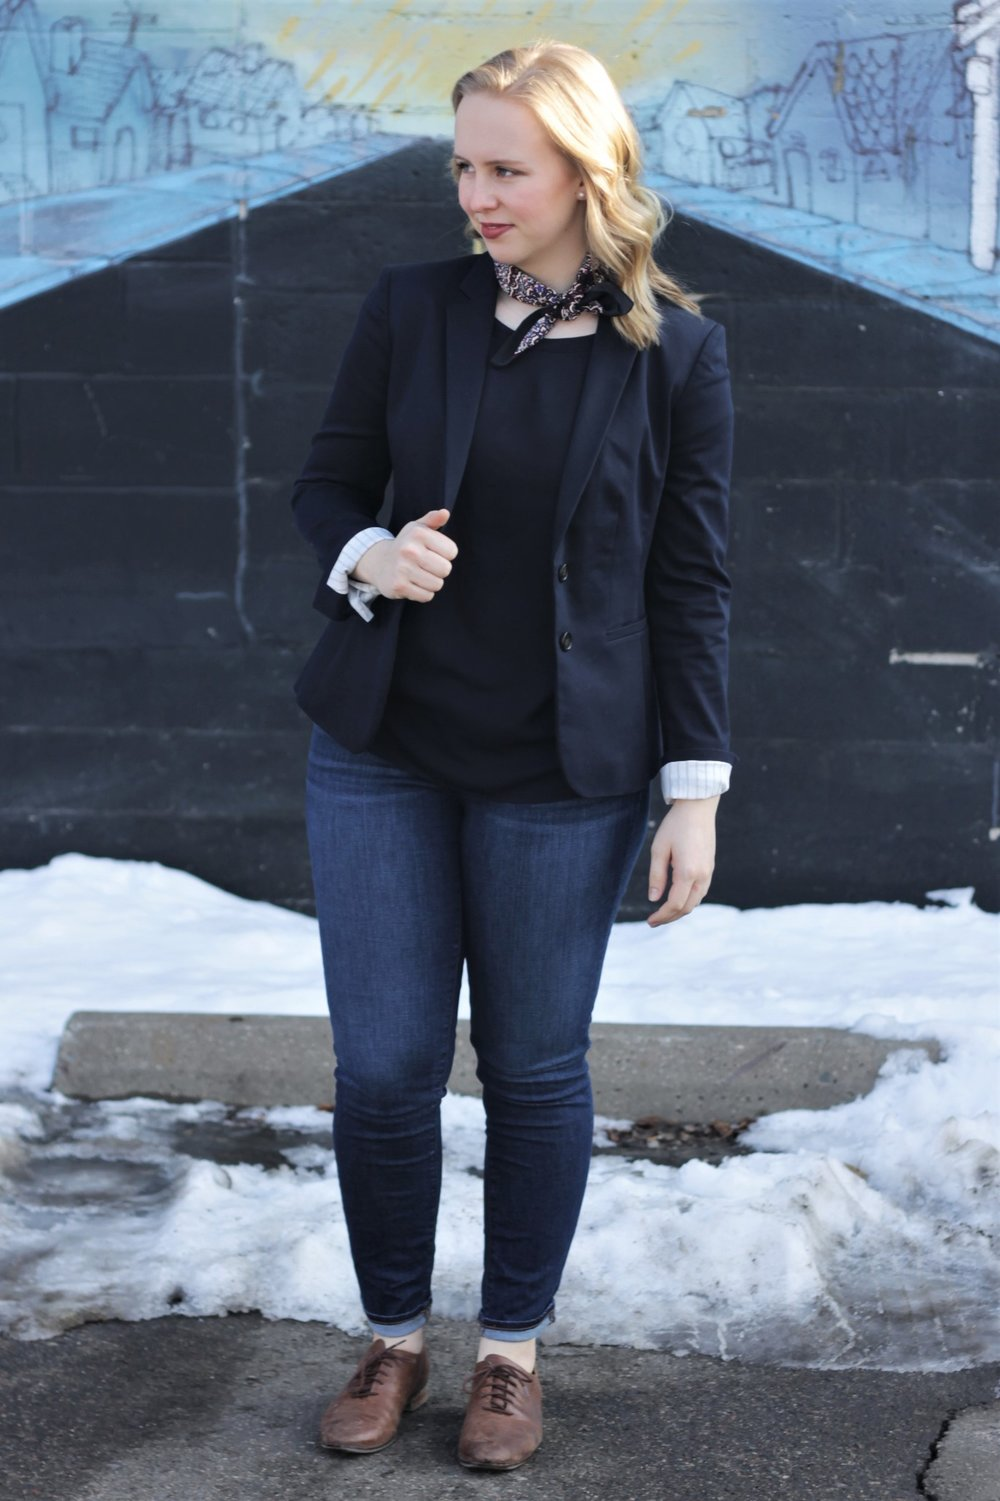 Casual   Jeans & a Blazer   Work & What She Wore